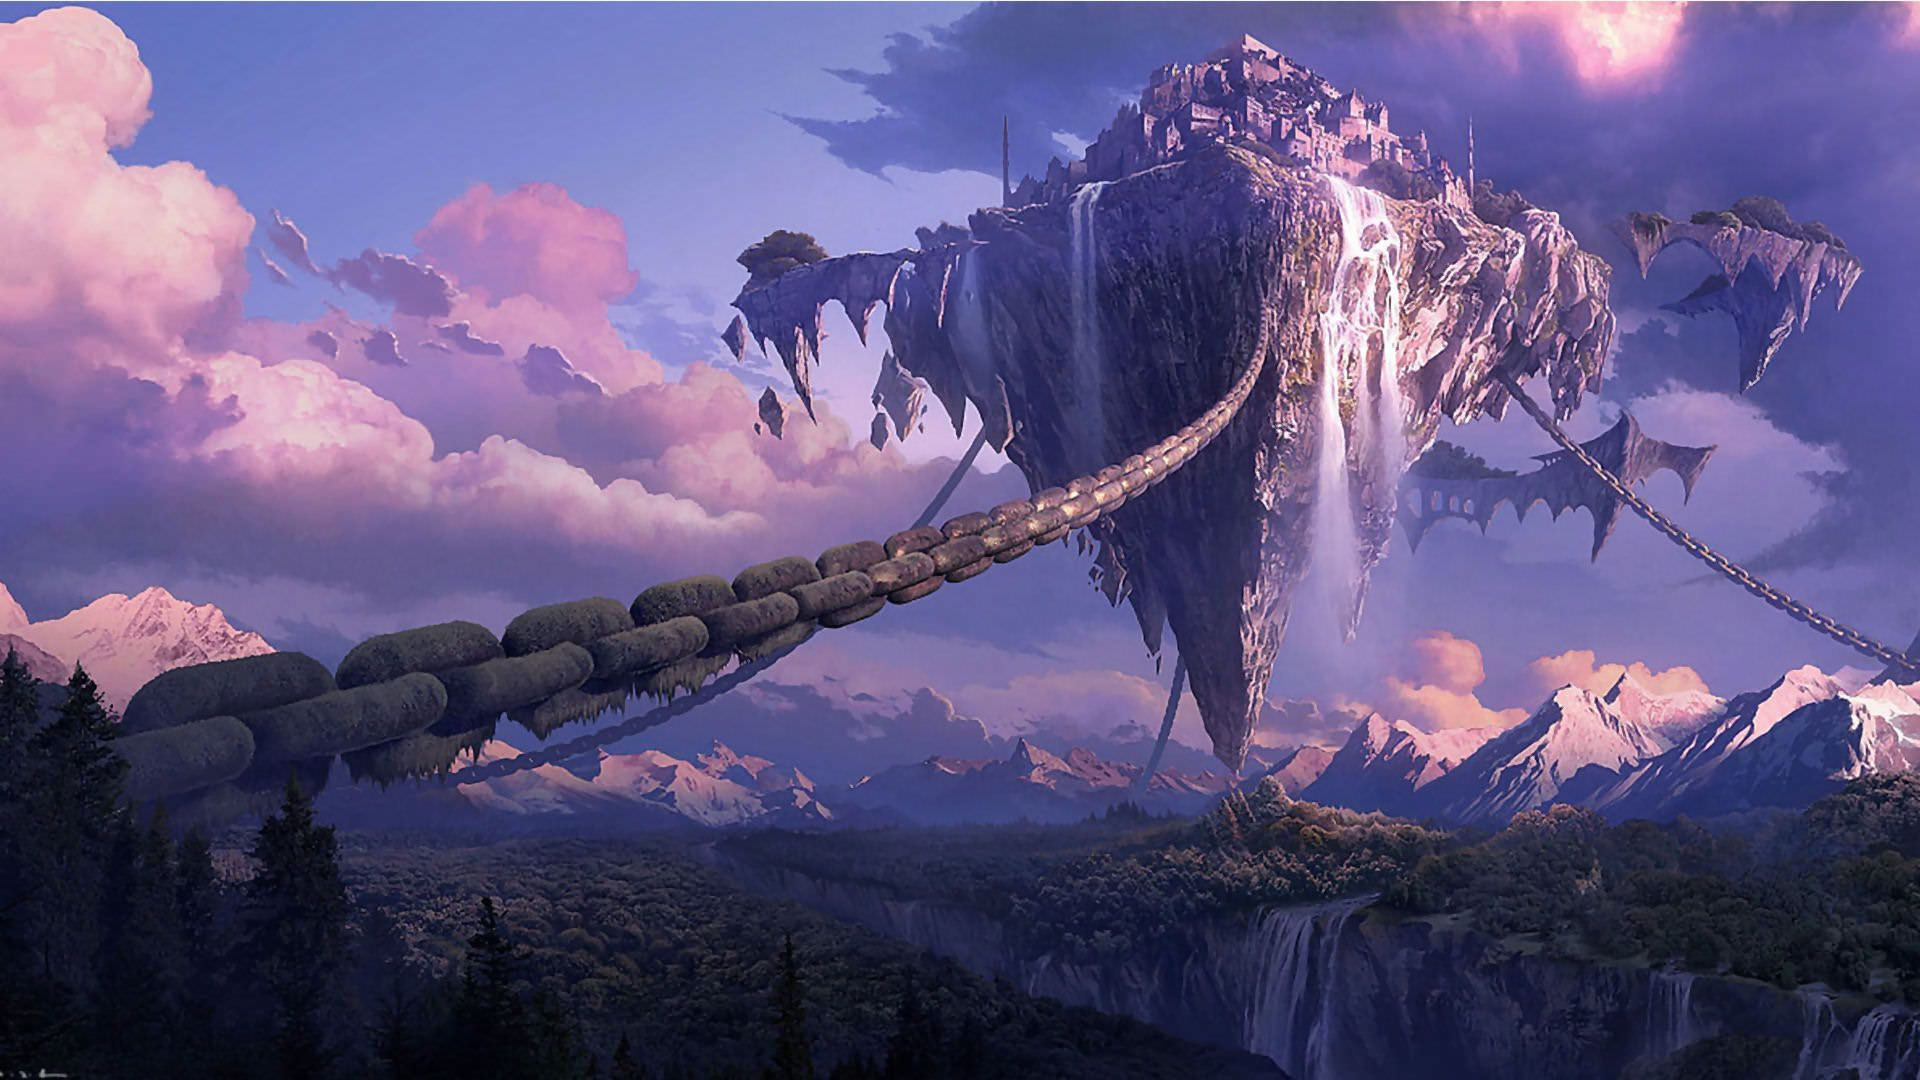 Anime Wallpapers Desktop Backgrounds HD Downloads All 1920x1080 Epic 69